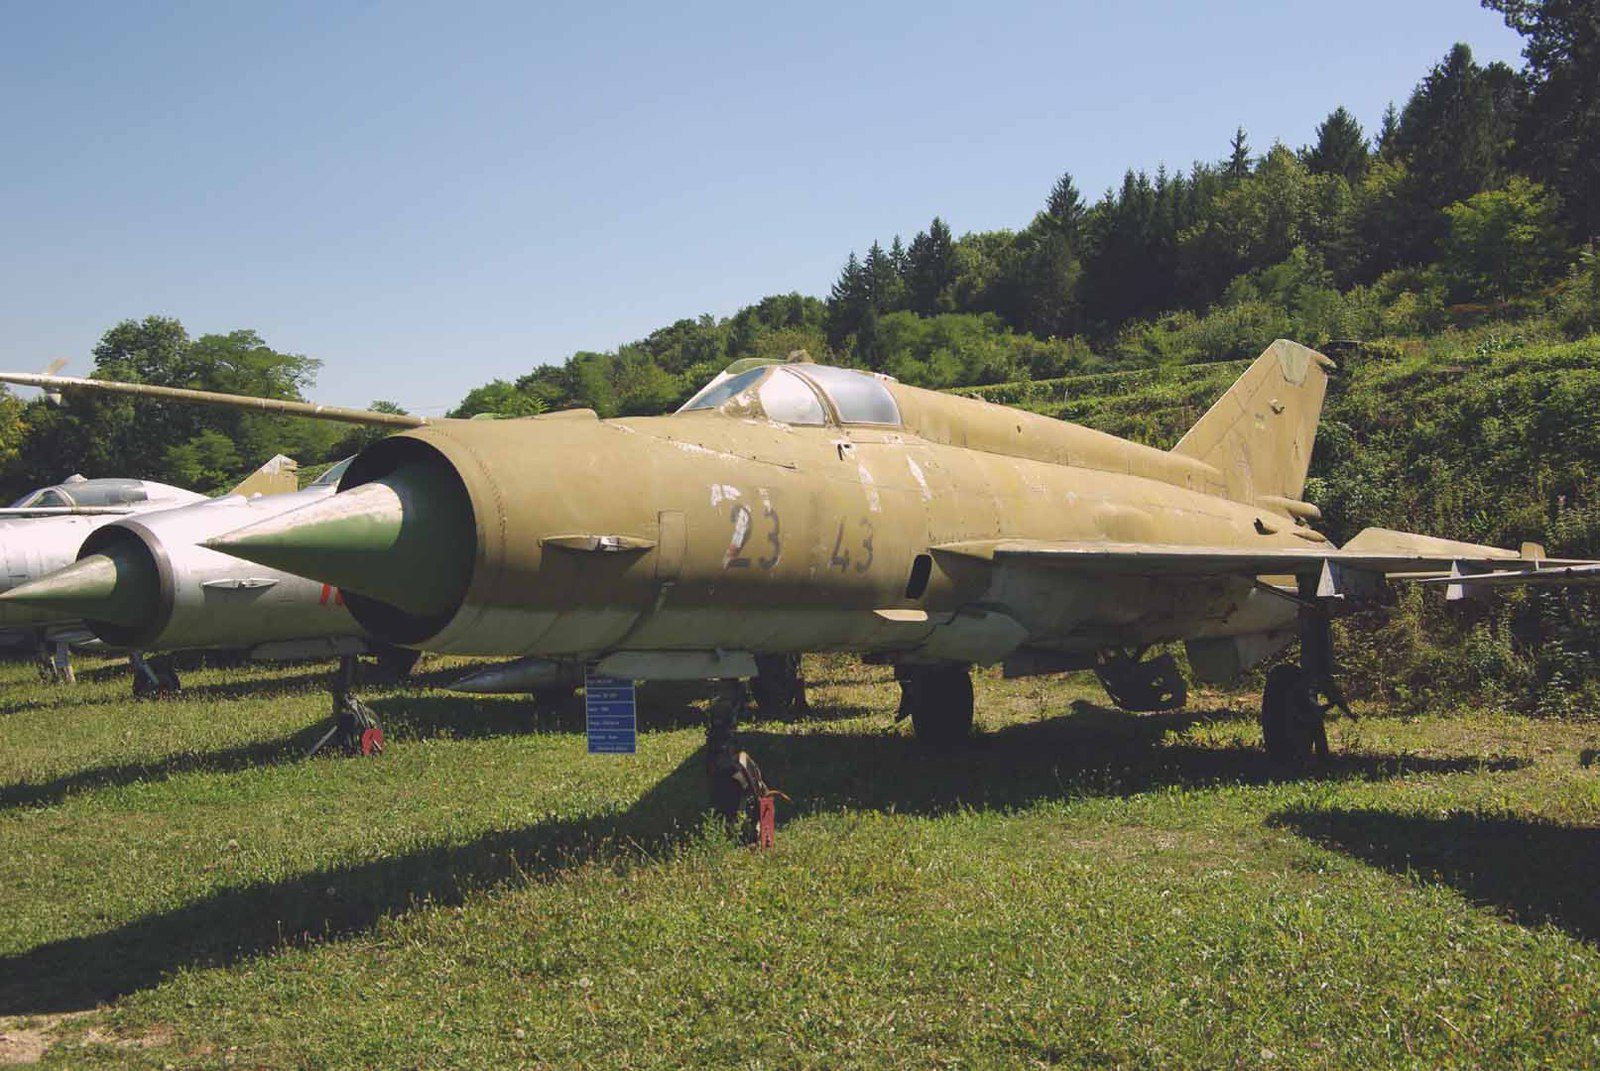 Le Mikoyan - Gourevich MiG-21MF Fishbed 23+43.